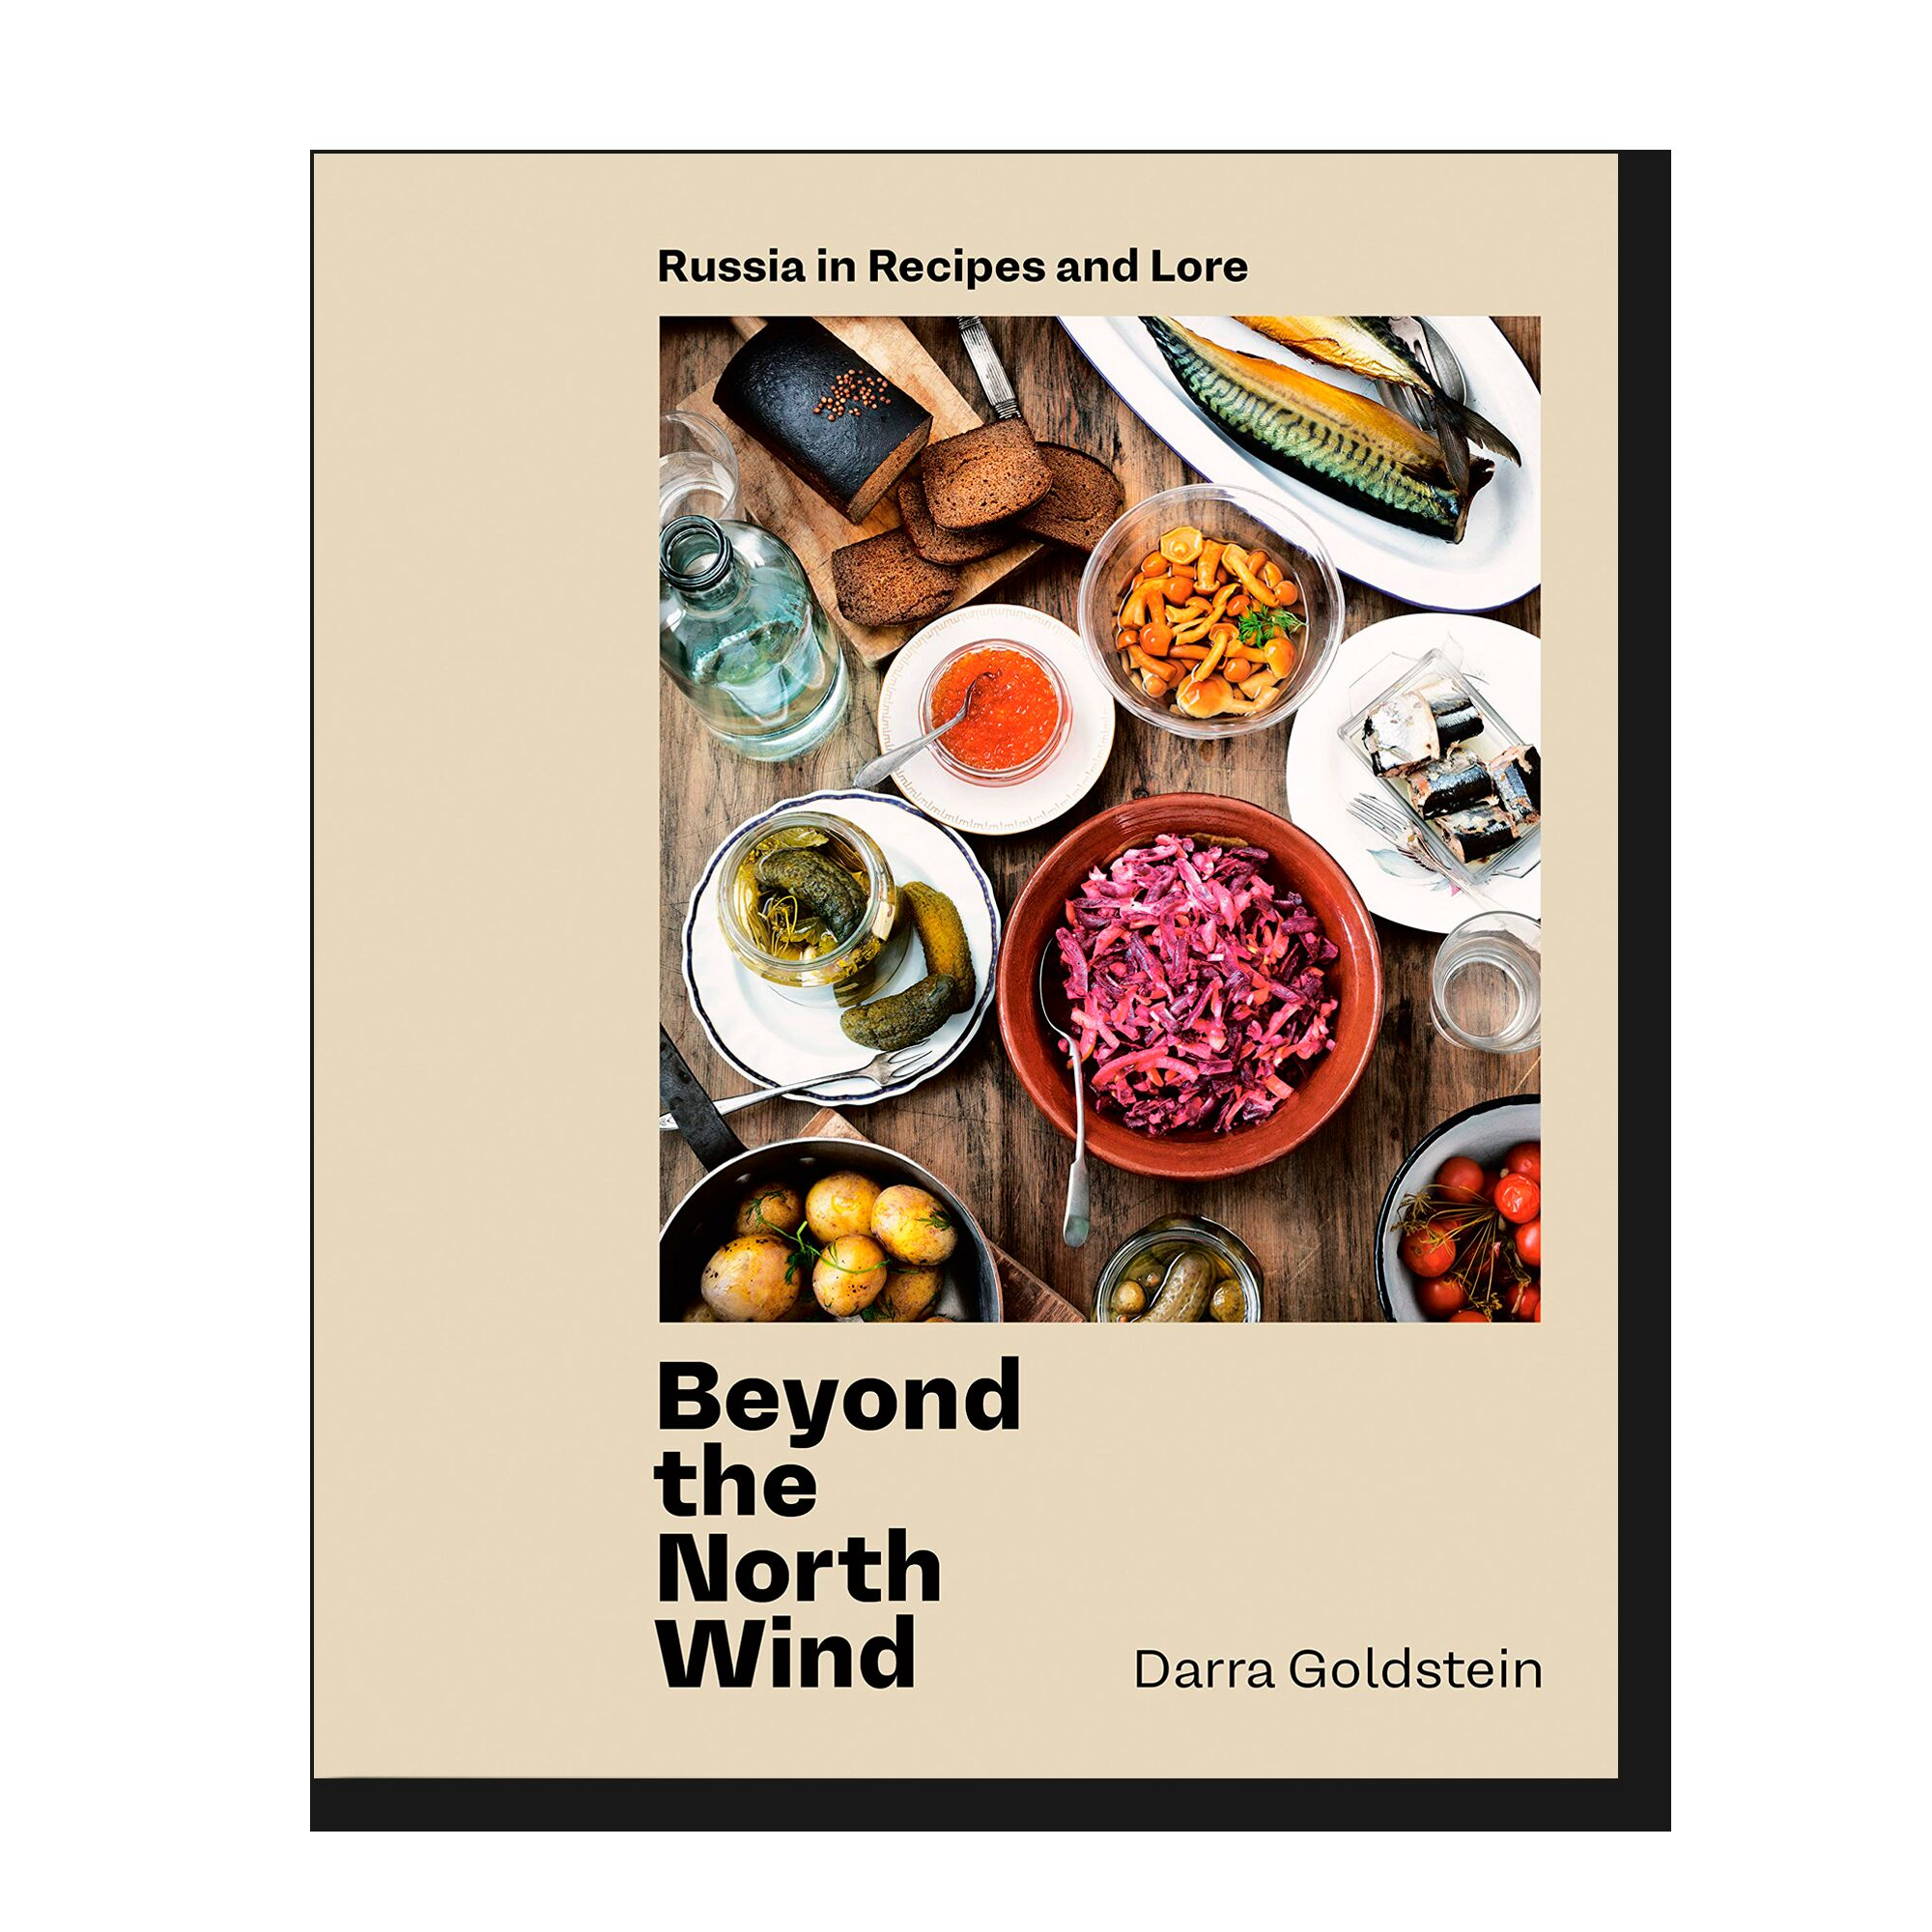 Beyond the North Wind: Russia in Recipes and Lore